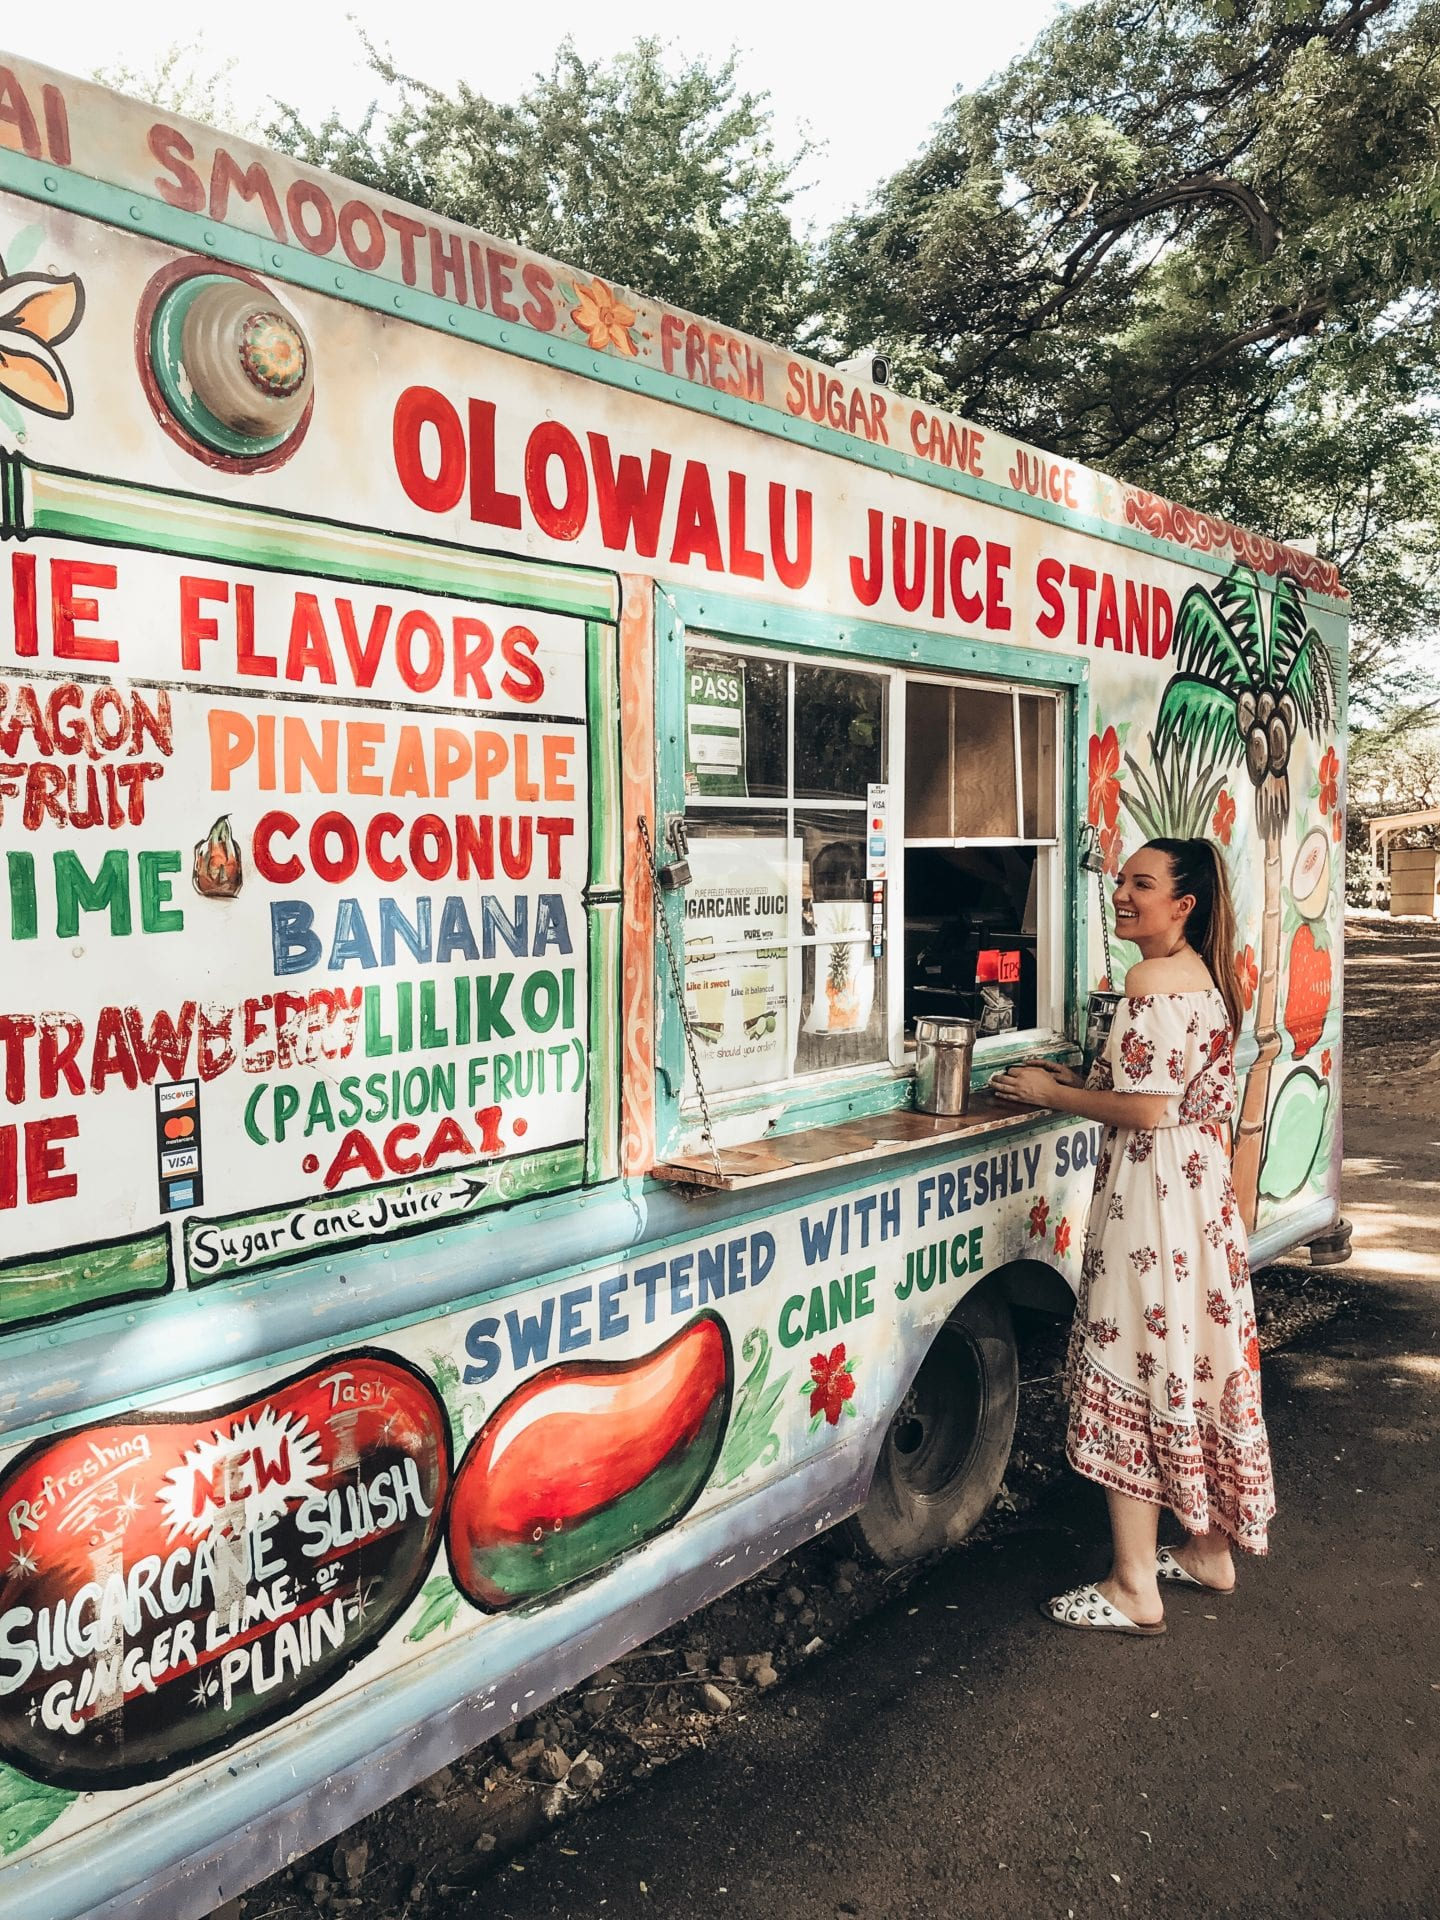 Olowalu Juice Stand I Maui travel guide I Hawaii Travel Guide I via justaddglam.com | Top Things to Do in Maui featured by top San Francisco travel blog, Just Add Glam: get a drink at Olowalu Juice Stand